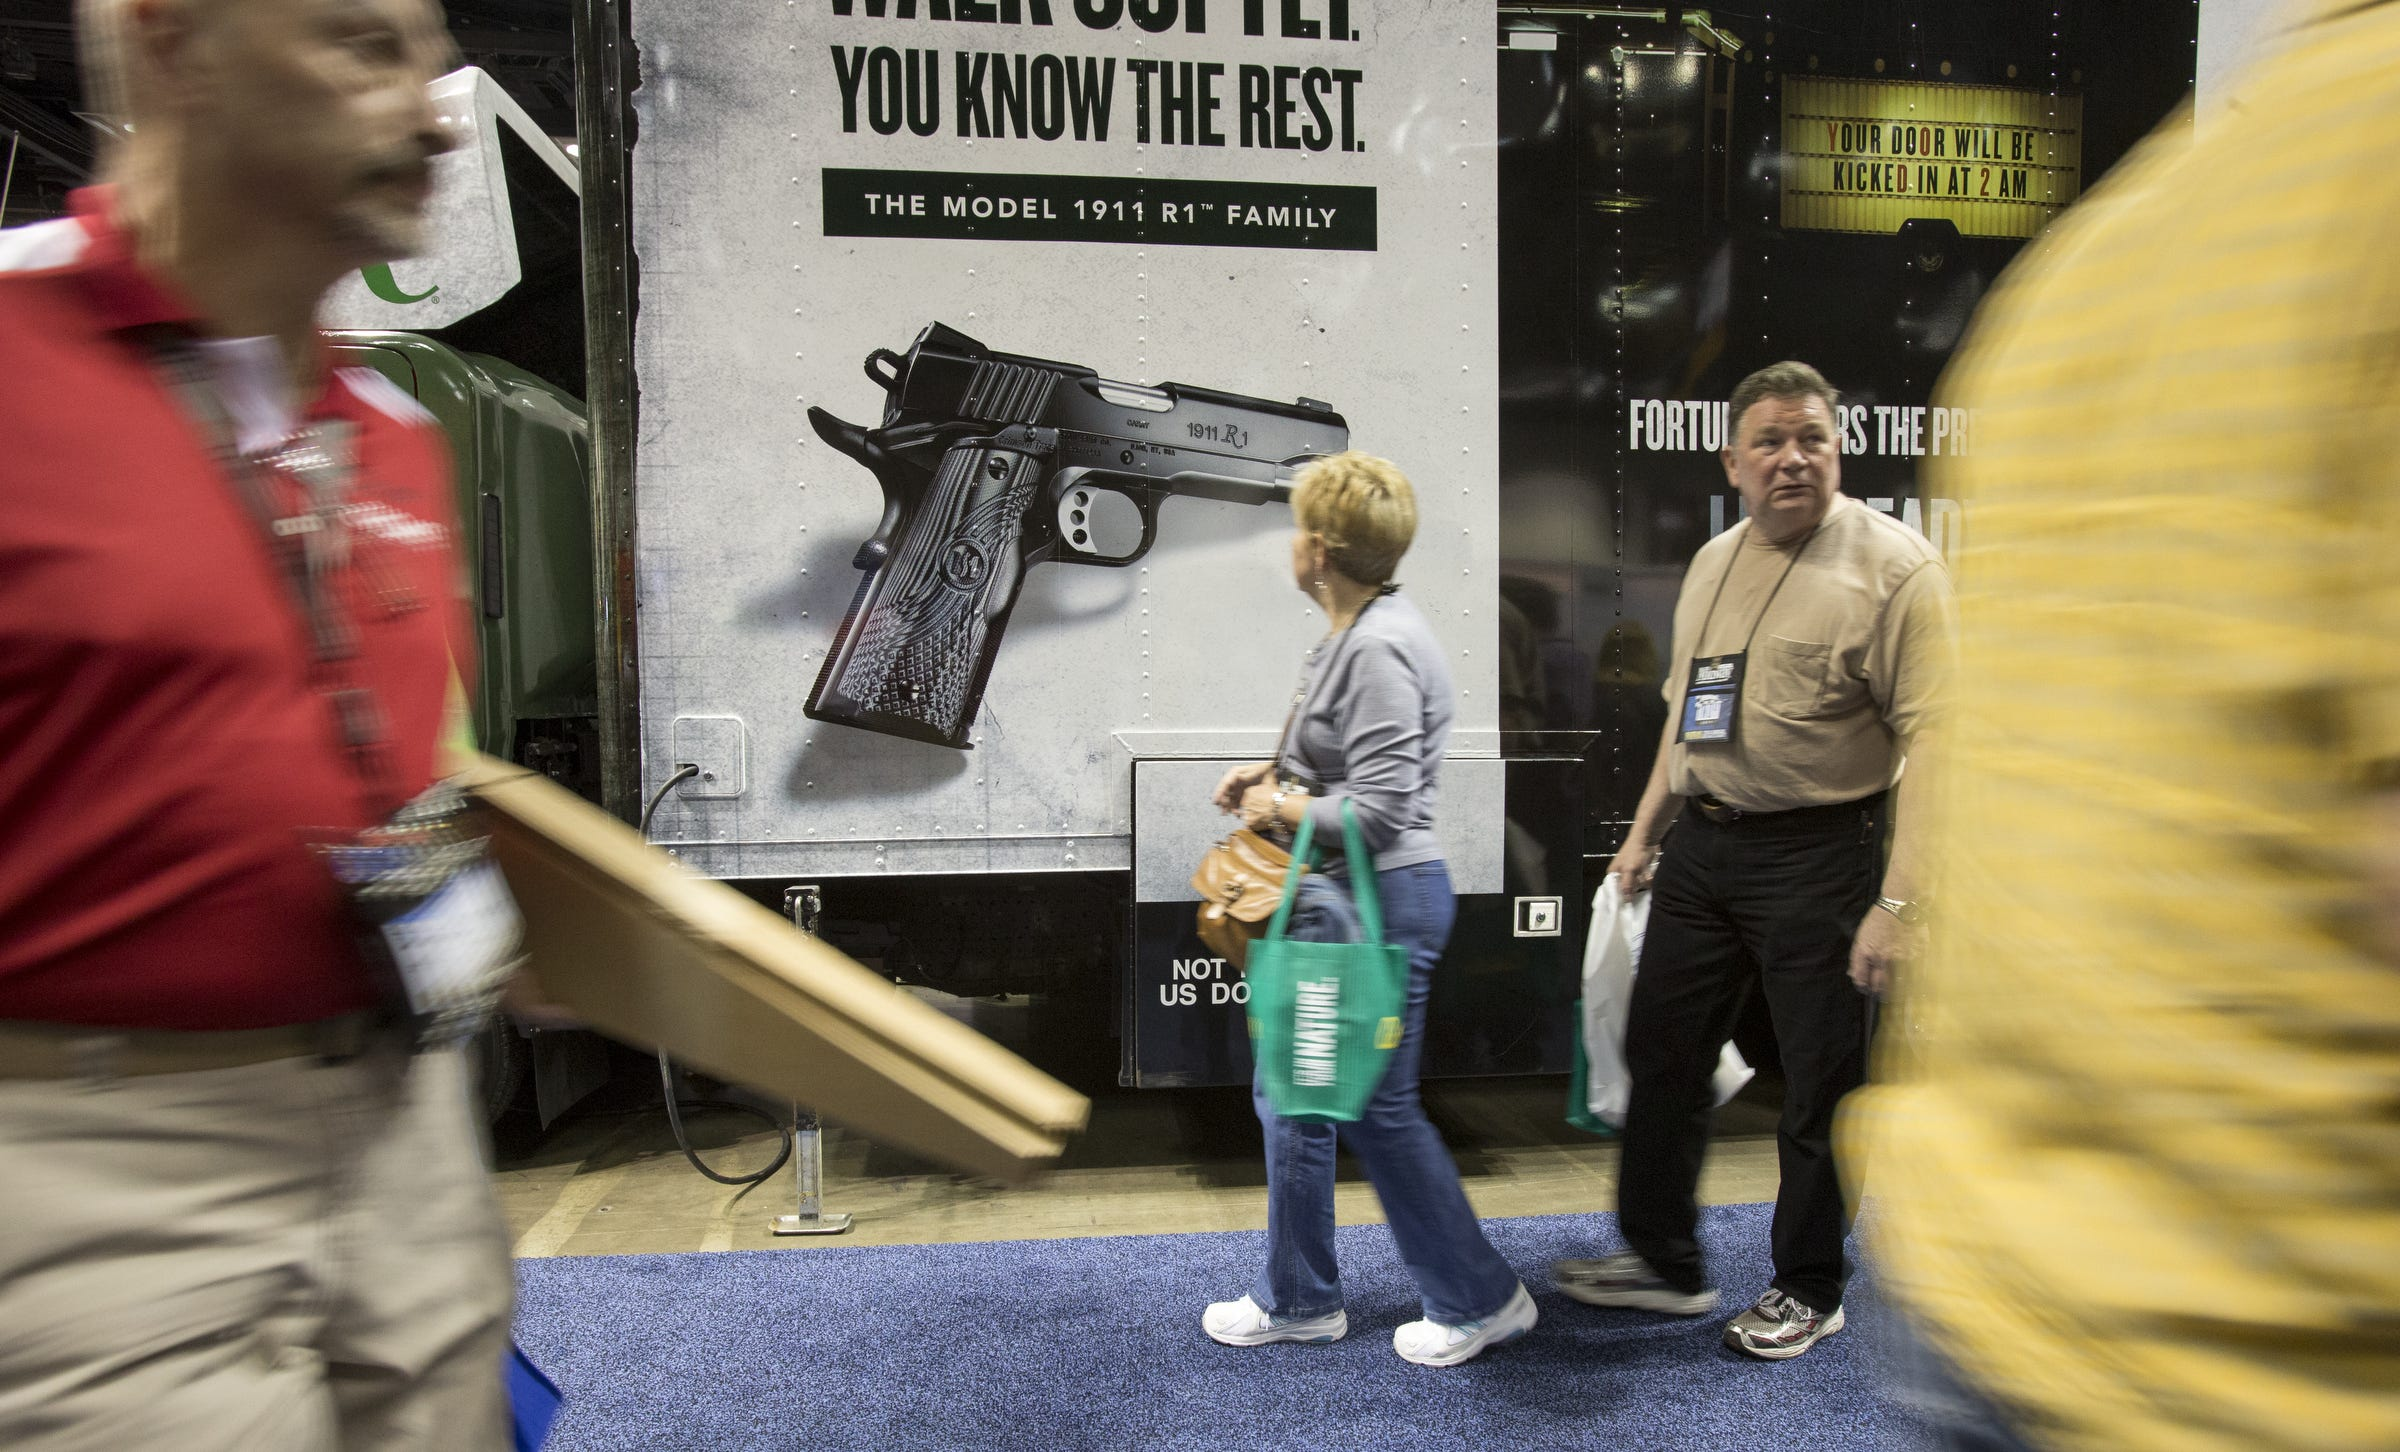 Here's what the NRA and Downtown hotels and restaurants said about guests with firearms